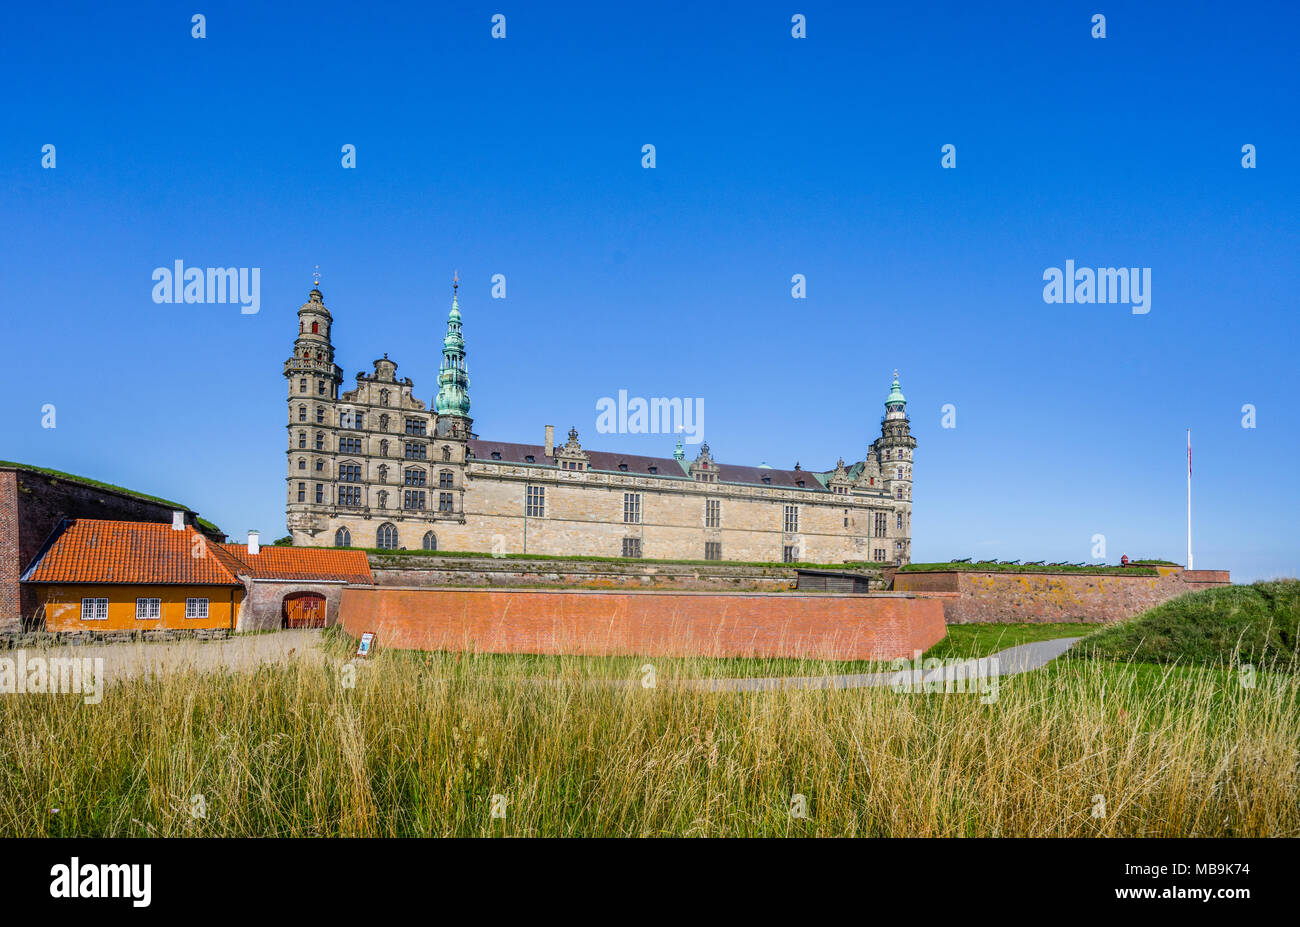 Kronborg Castle rises behind massiv defending walls, the magnificent Renaissance castle is immortalized as Elsinore in William Shakespeare's play Haml - Stock Image